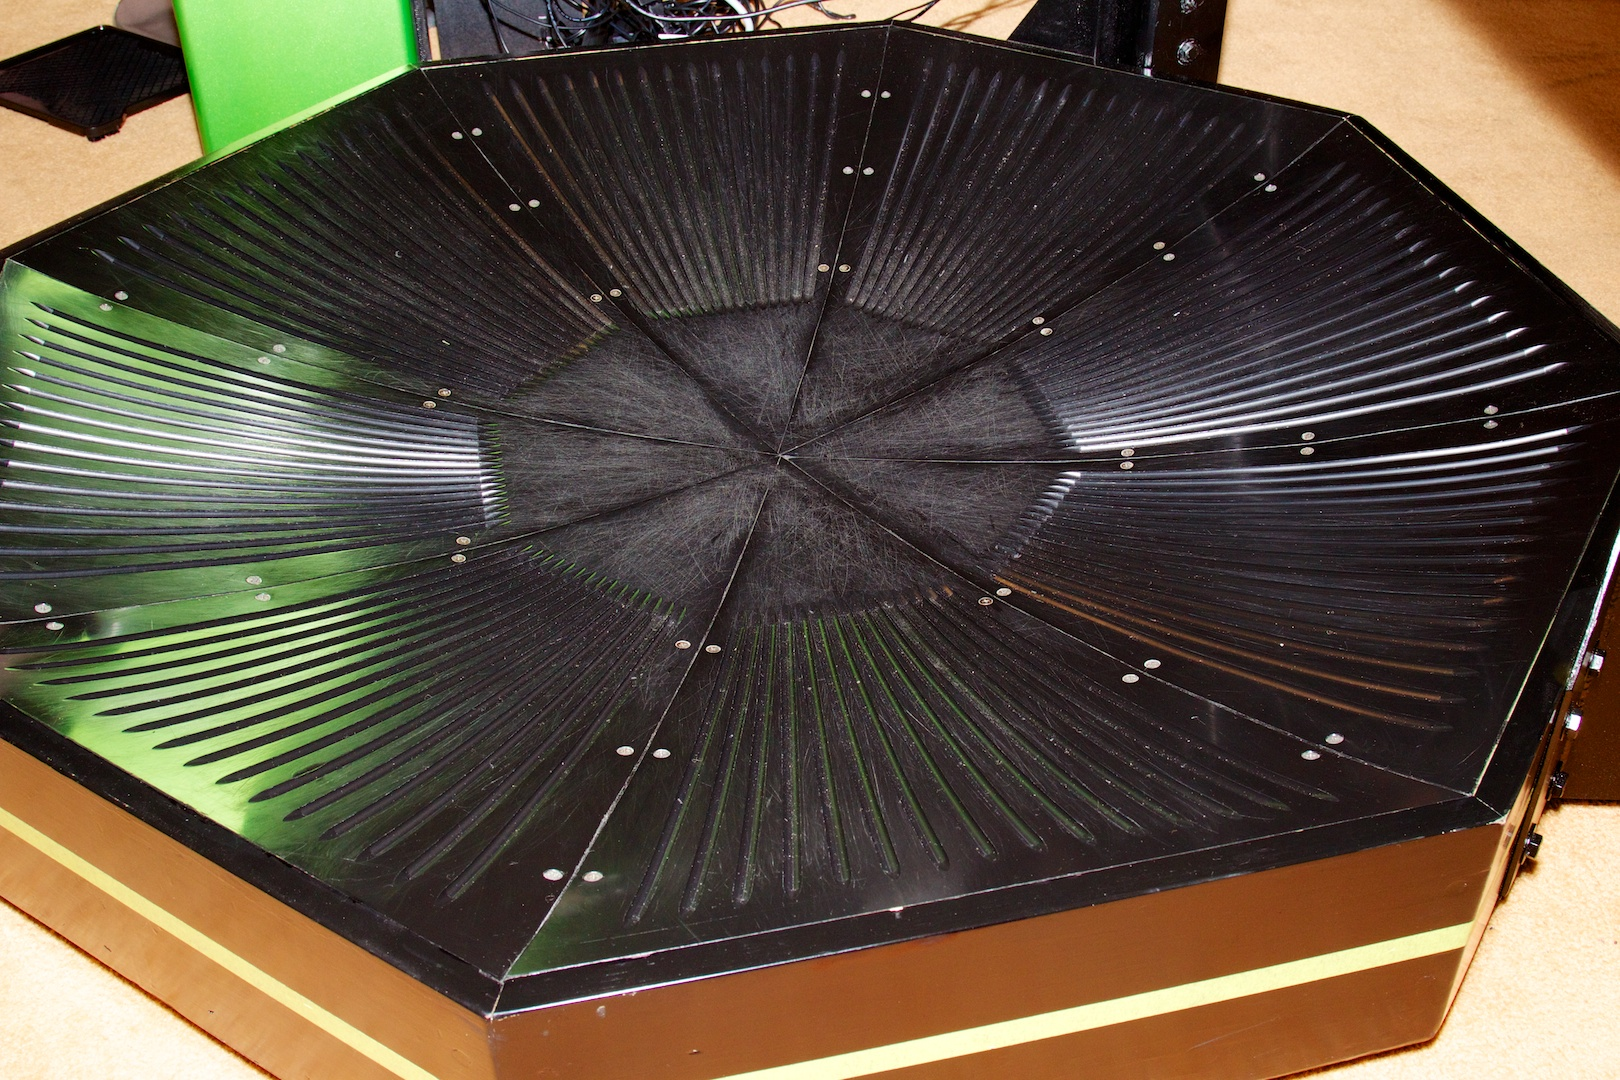 Close-up of the low-friction surface on which the player walks.